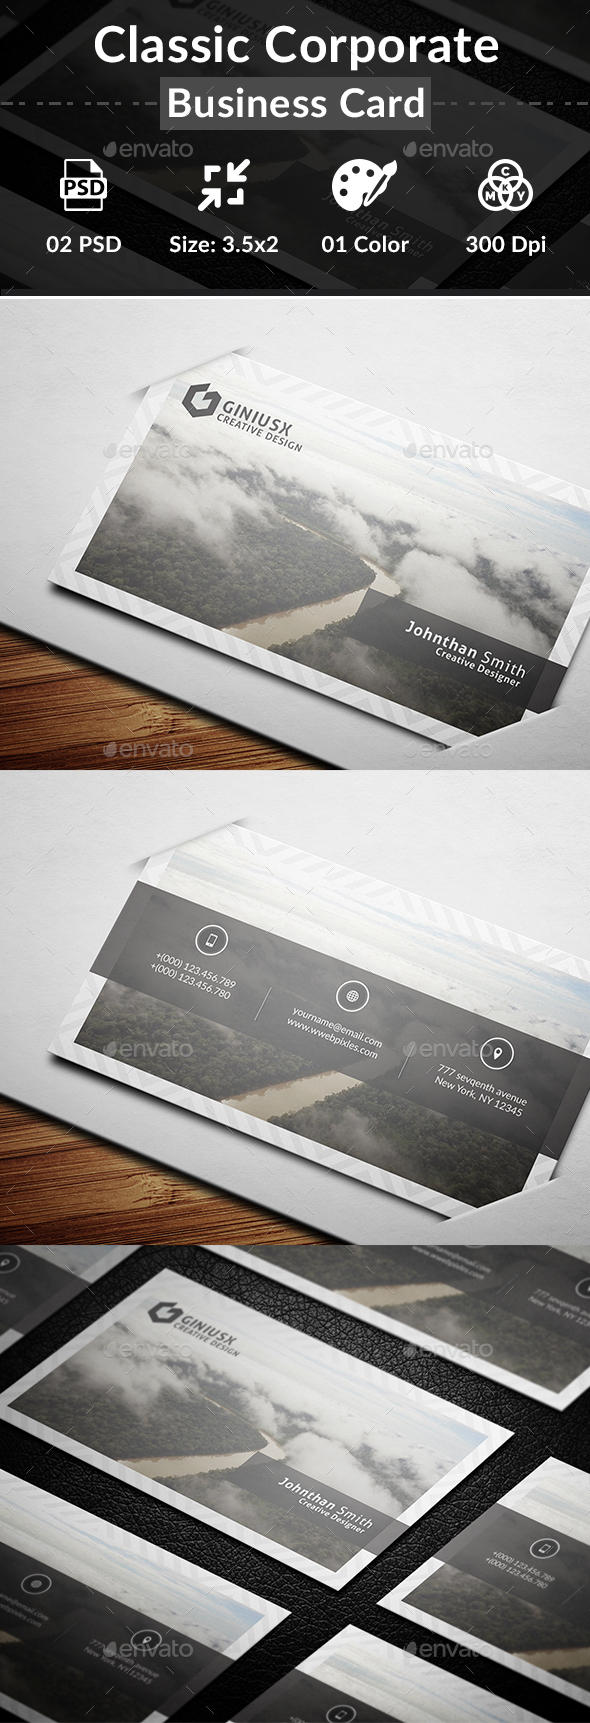 Classic Corporate Business Card - Business Cards Print Templates